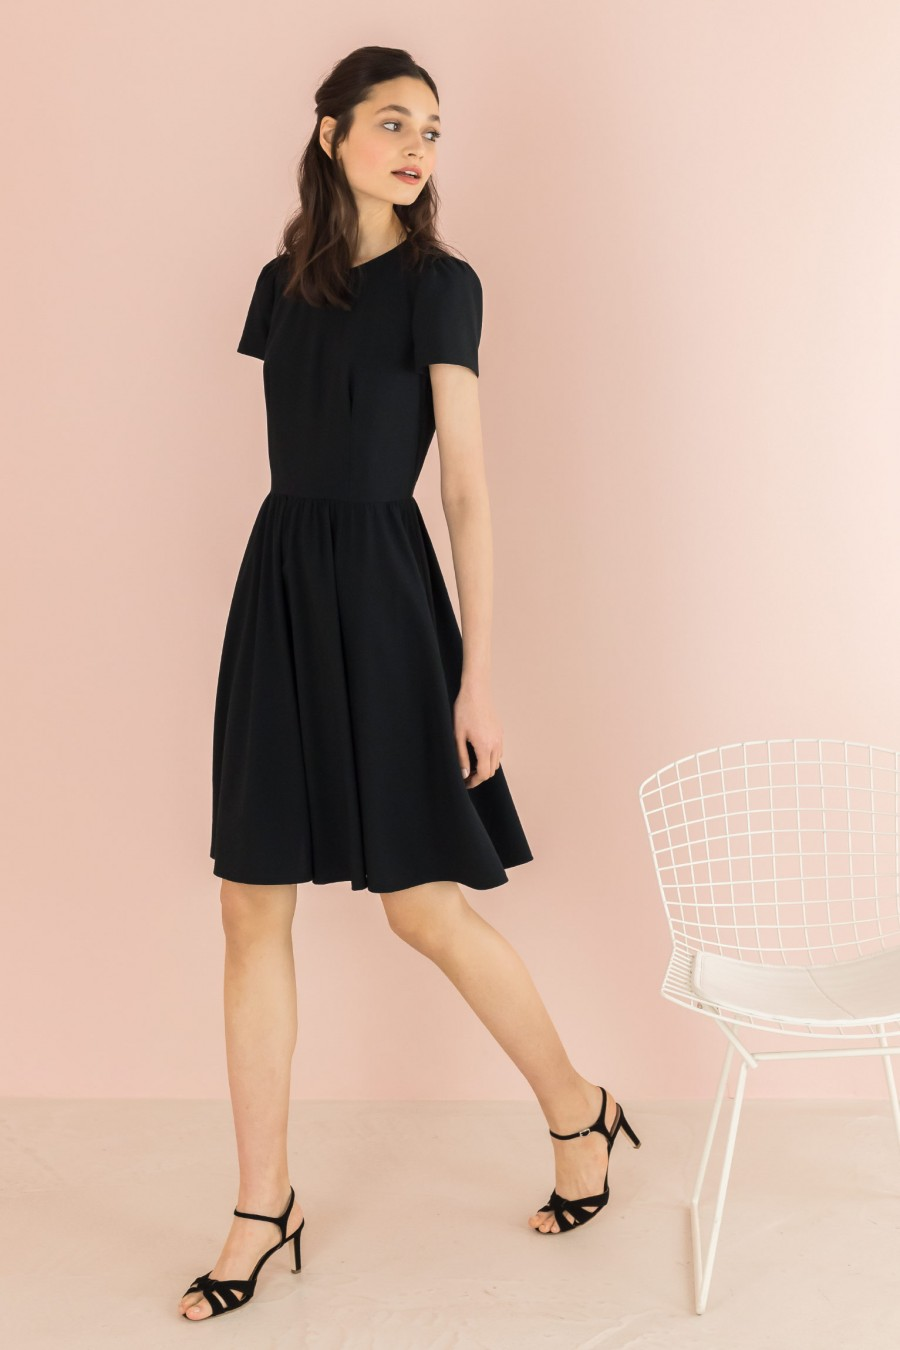 dress with gathered skirt and short sleeves